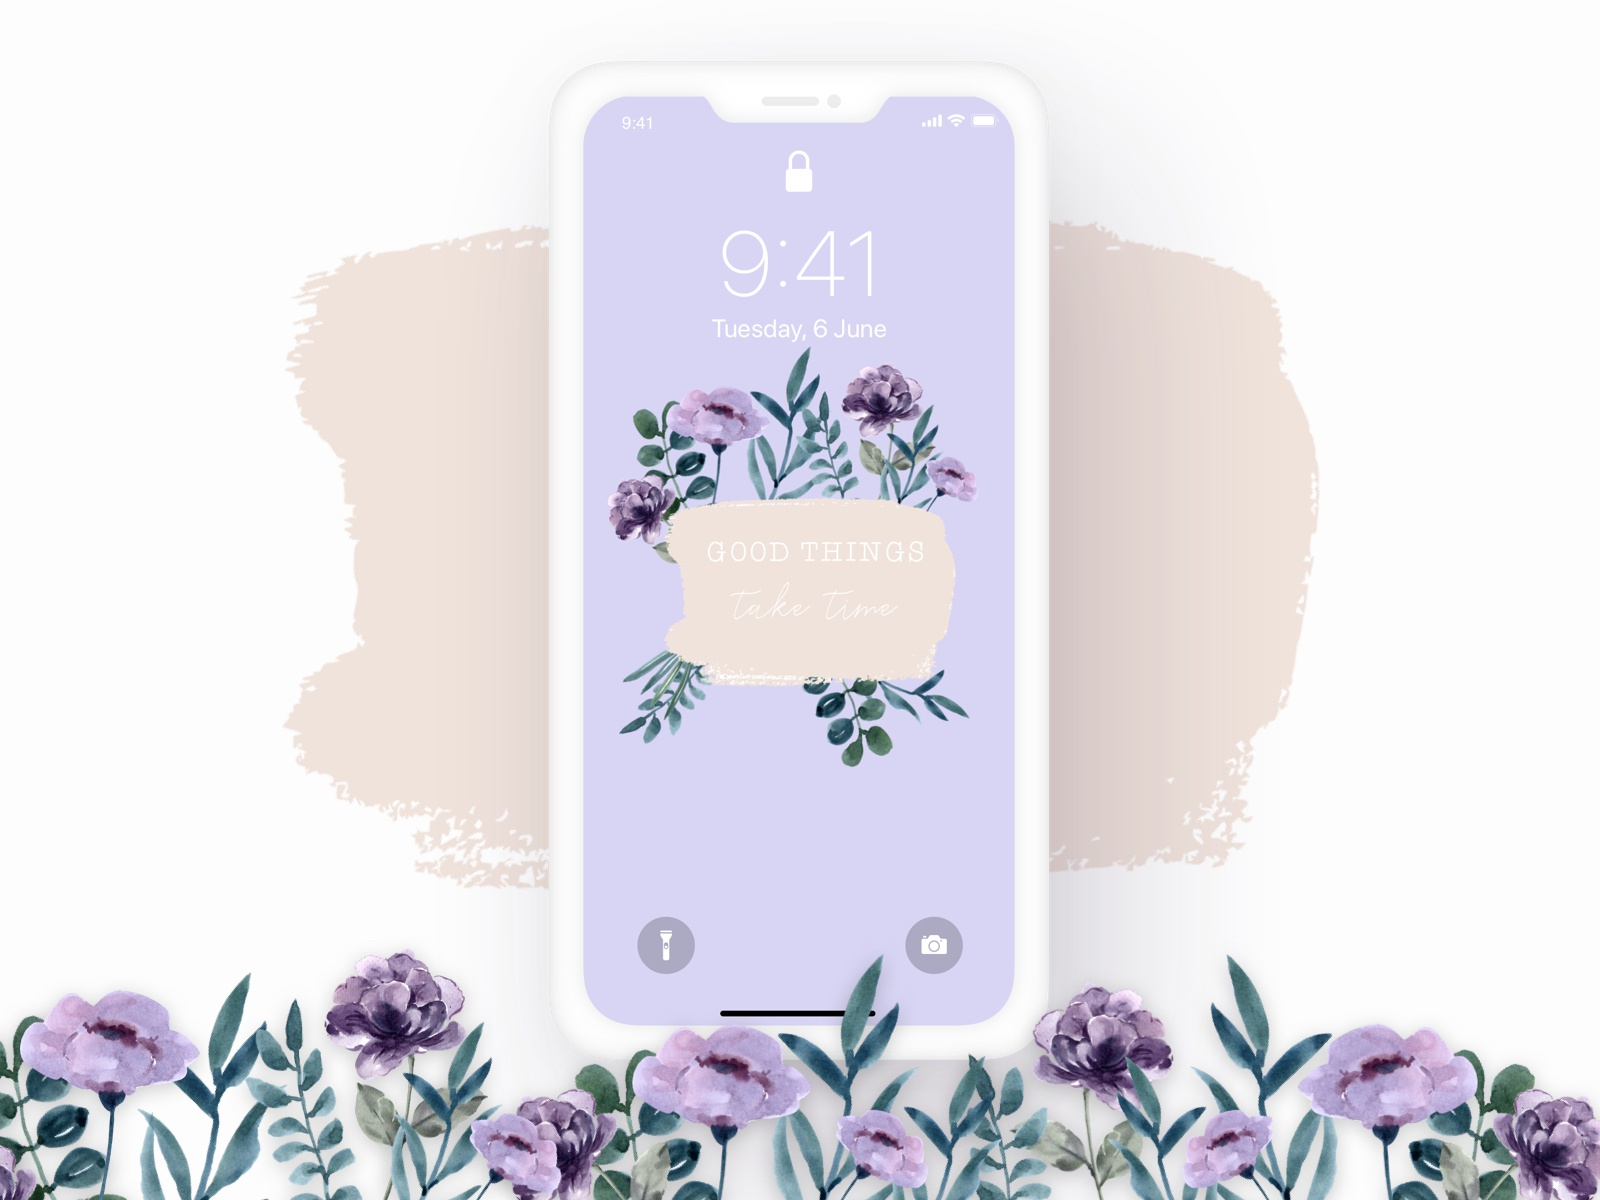 Wallpaper Watercolor Flowers By Cassandra Doux On Dribbble